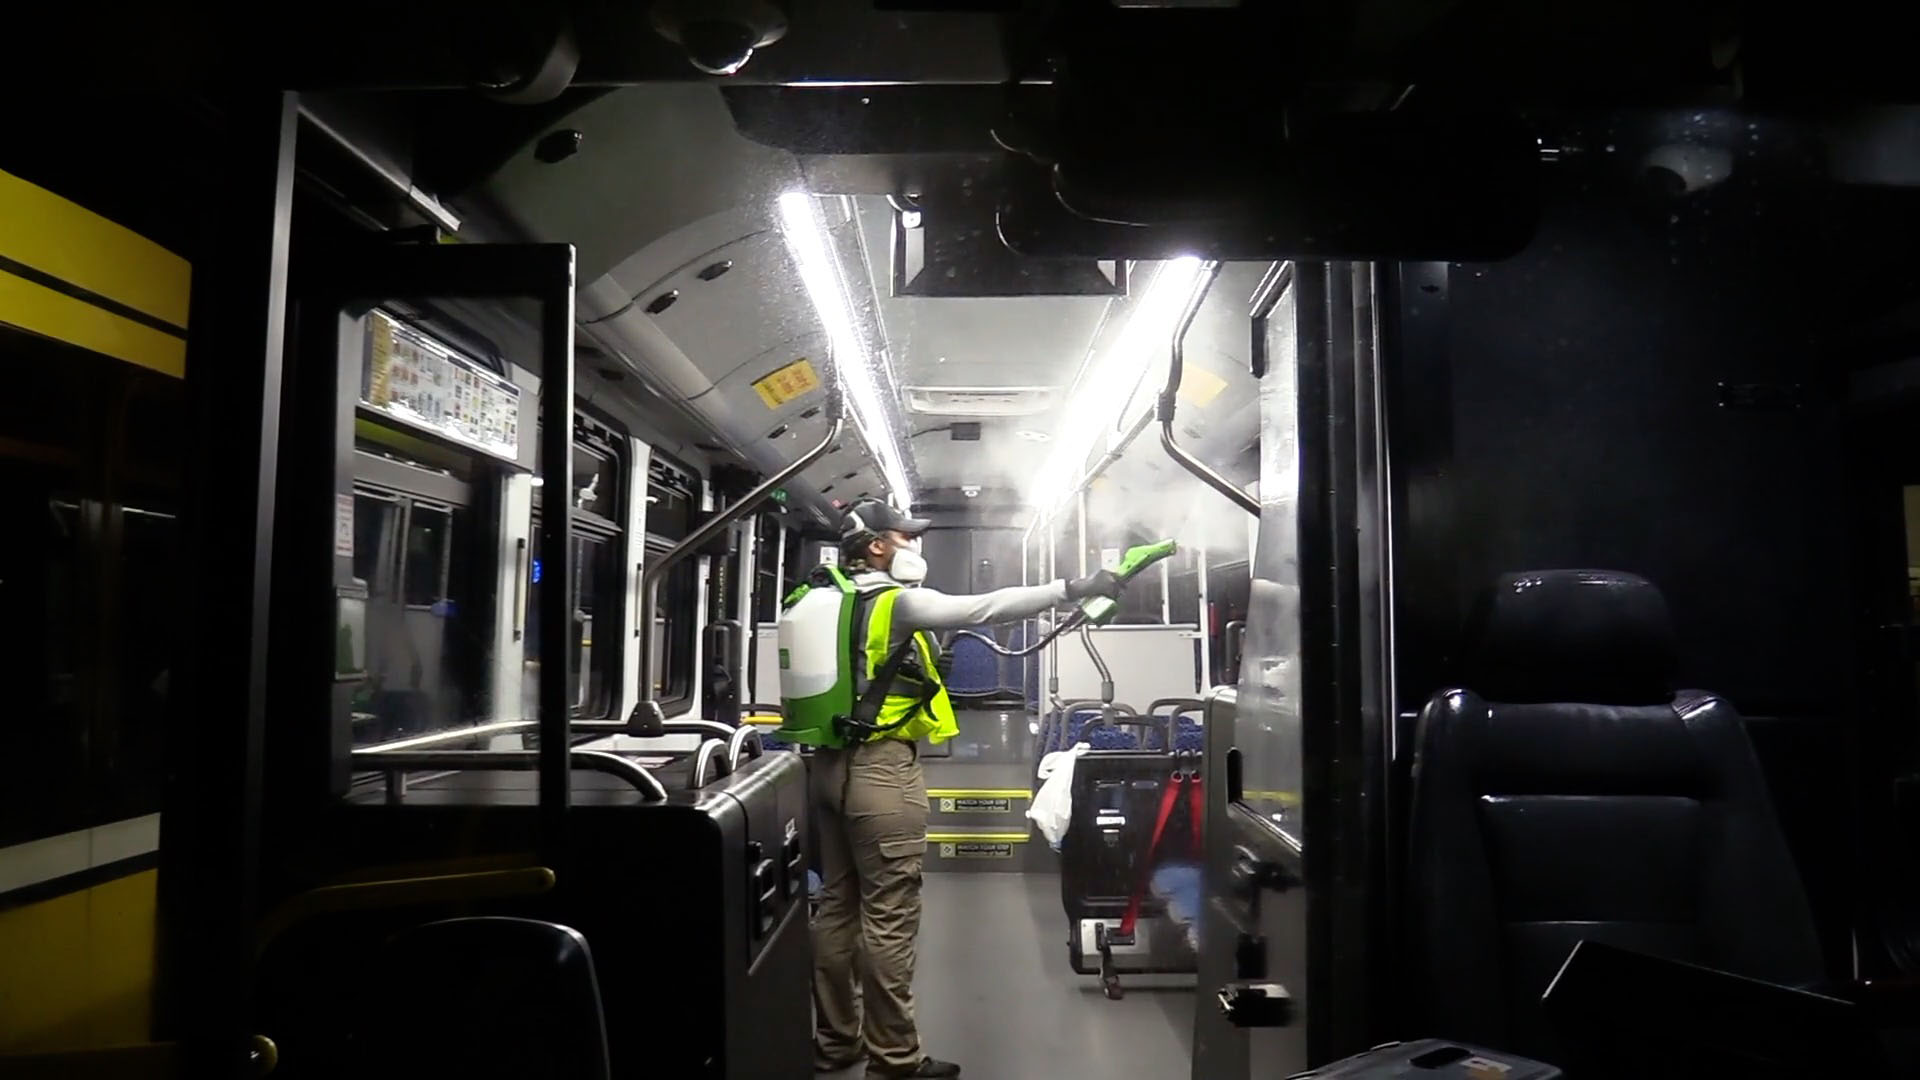 Hydrogen peroxide fogger used to disinfect DART bus